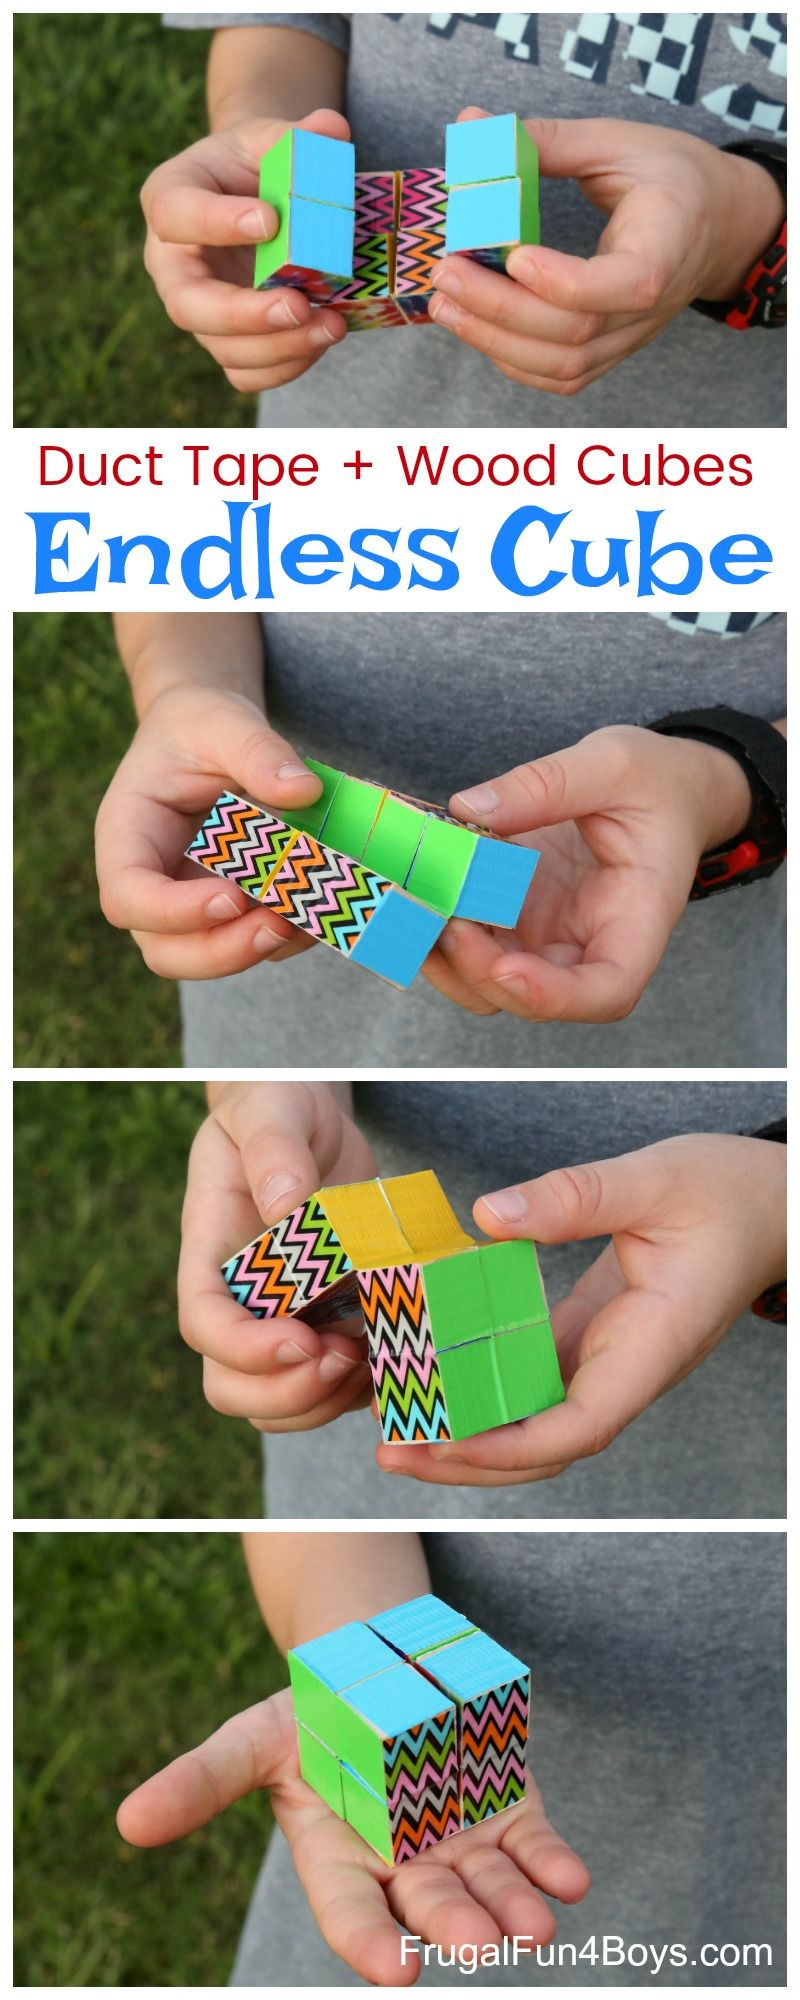 How to Make a Duct Tape Endless Cube - Fun fidget toy. This cube changes shape endlessly.